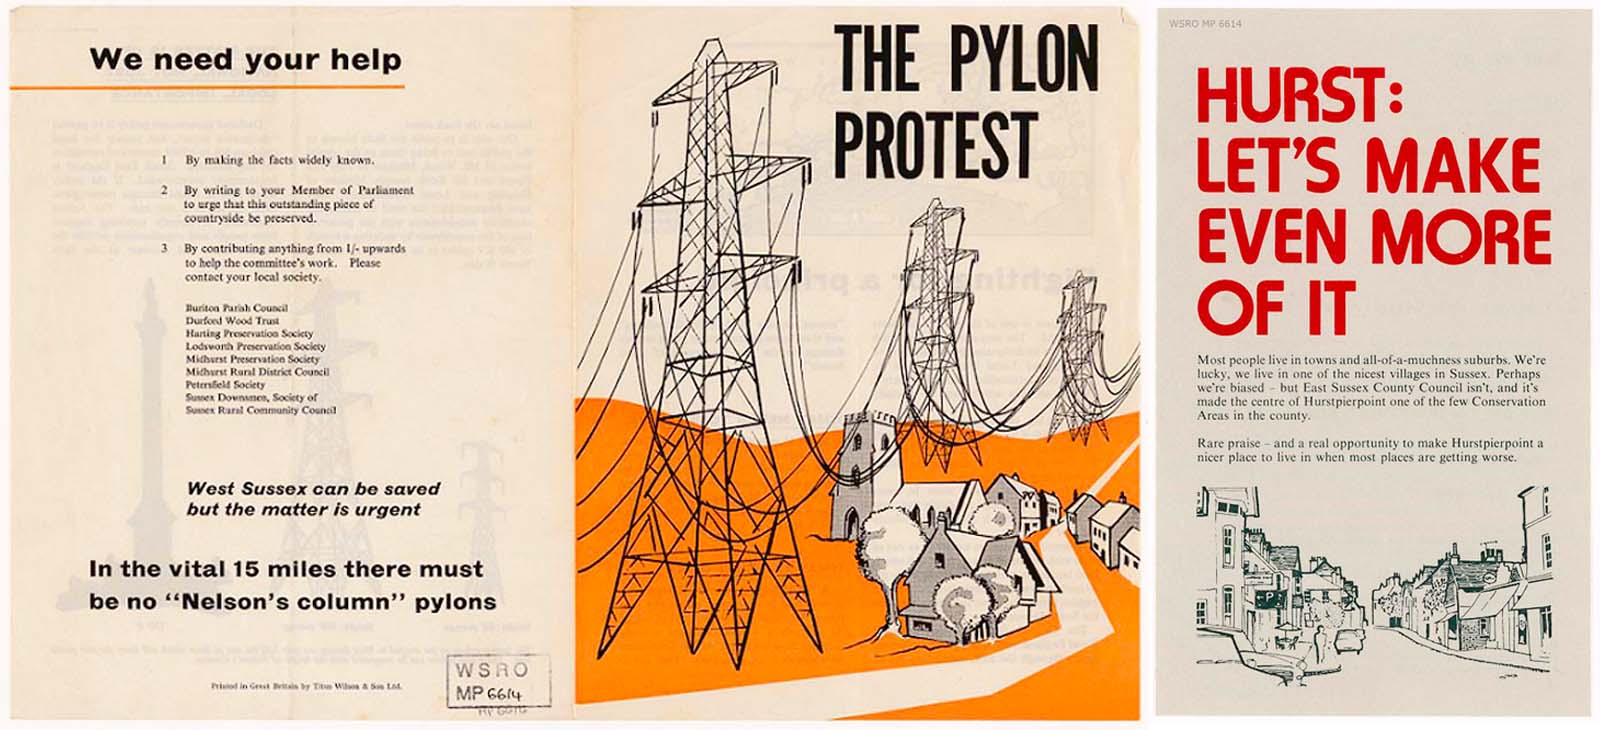 illustrations from campaigning leaflets objecting to the construction of pylons in the countryside with imagery sowing pylons towering above country villages